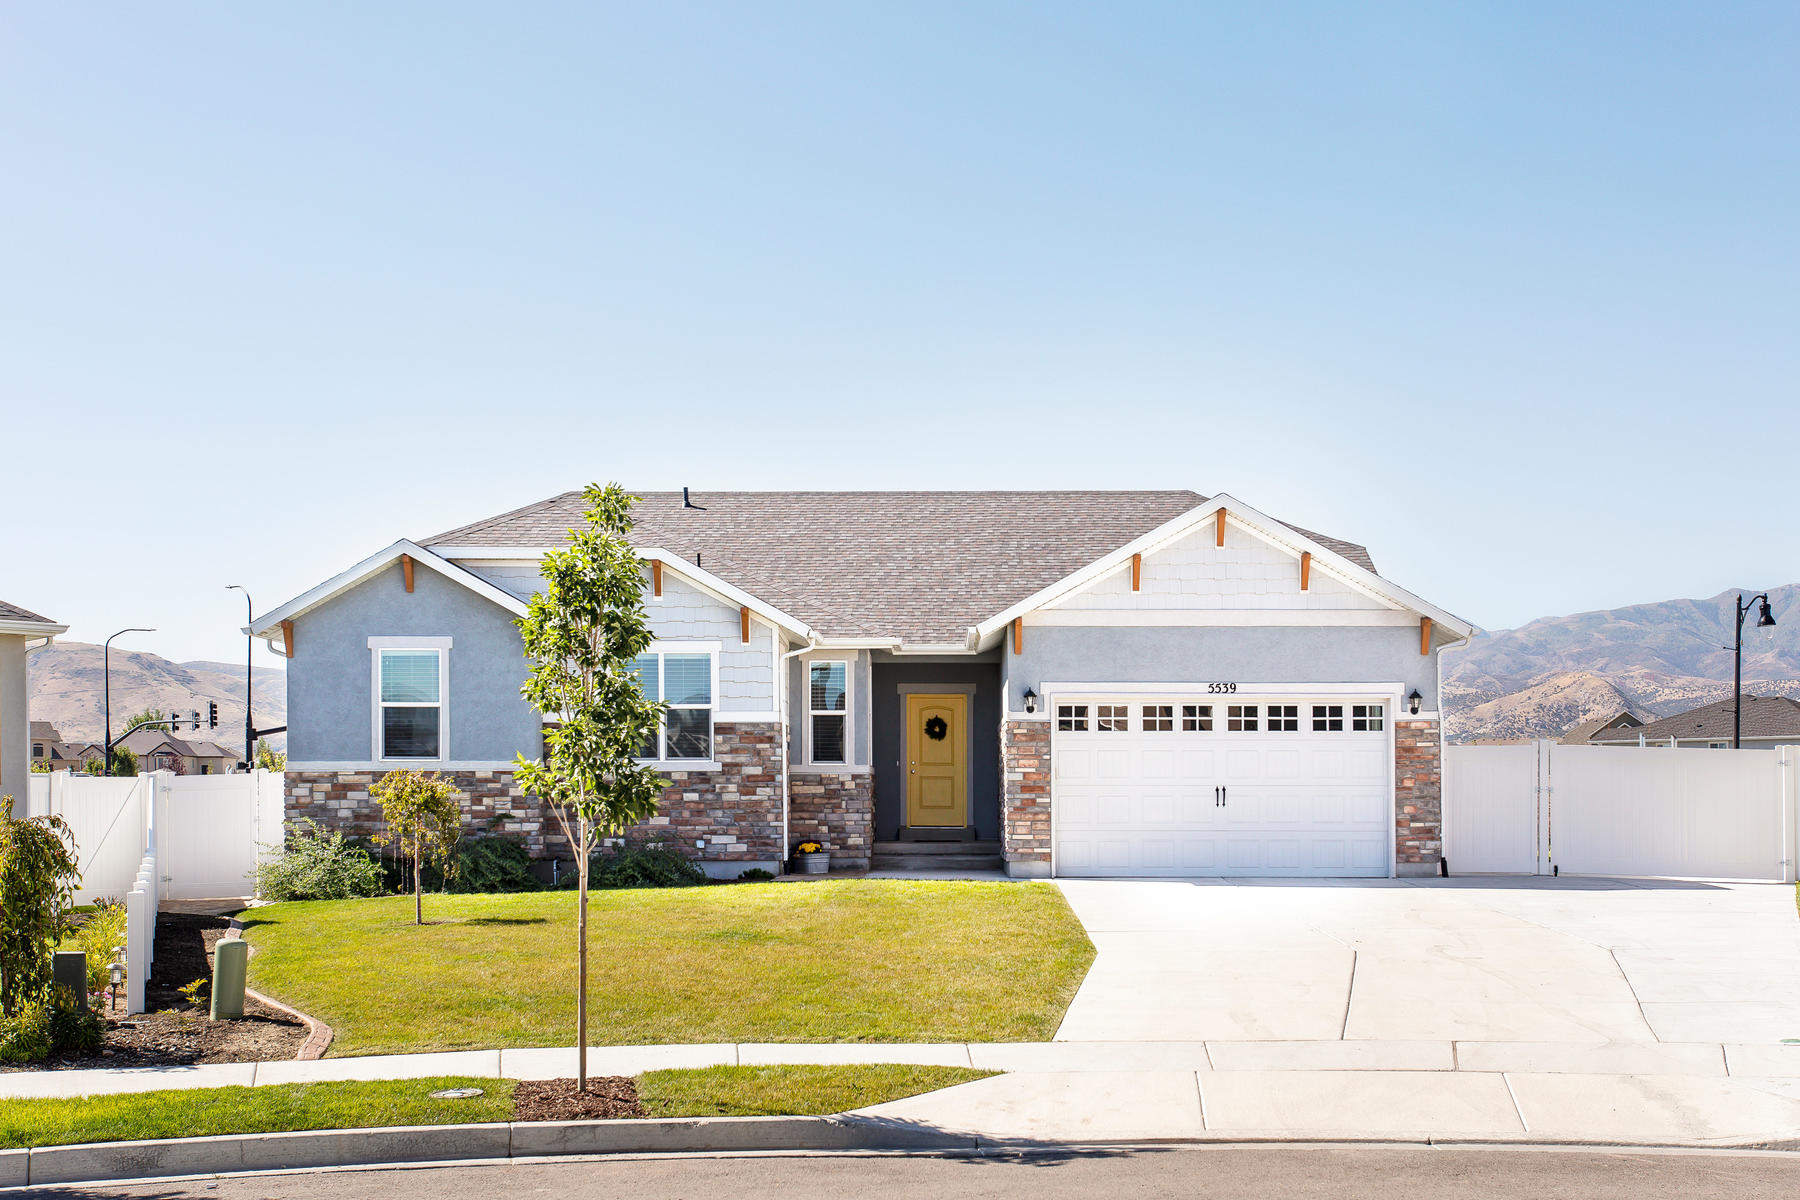 Single Family Homes for Sale at Spacious American Craftsman Style Home 5539 W Iron King Cove, Herriman, Utah 84096 United States